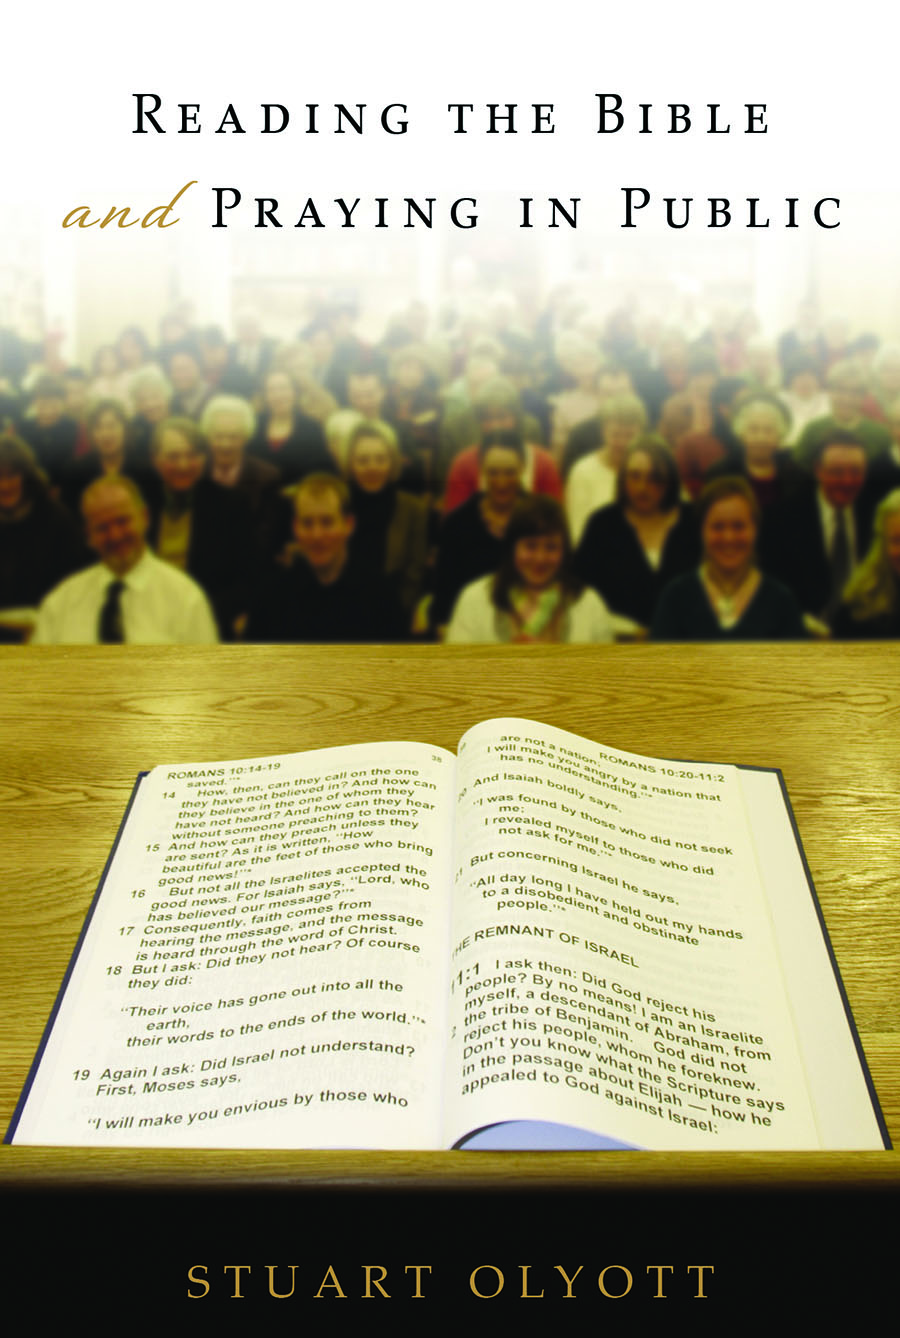 Advice on Reading the Bible in Public